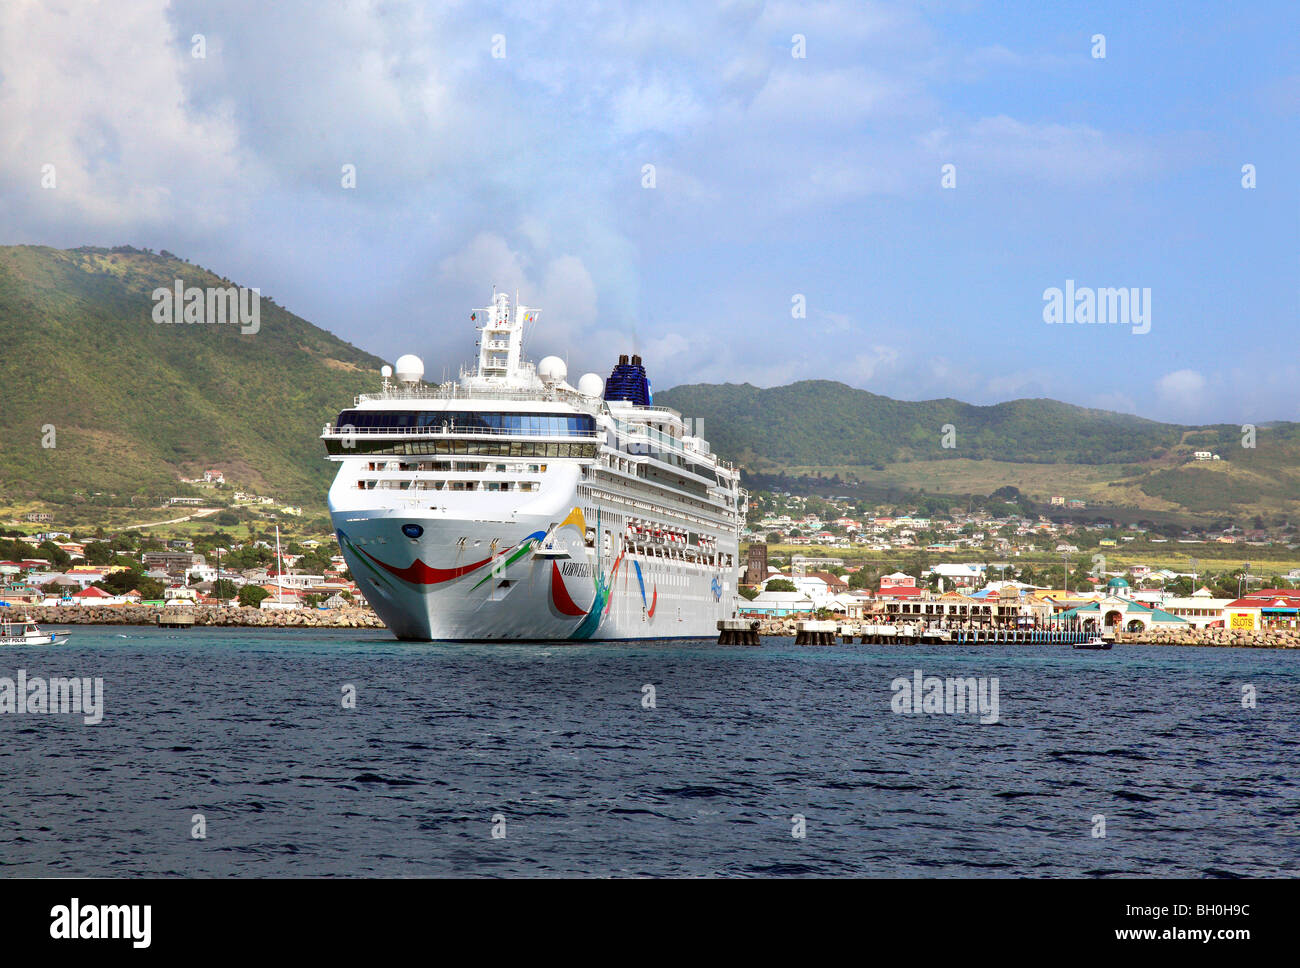 Cruise LIner 'Norwegian Dawn' at St.Kitts harbour in the Caribbean - Stock Image